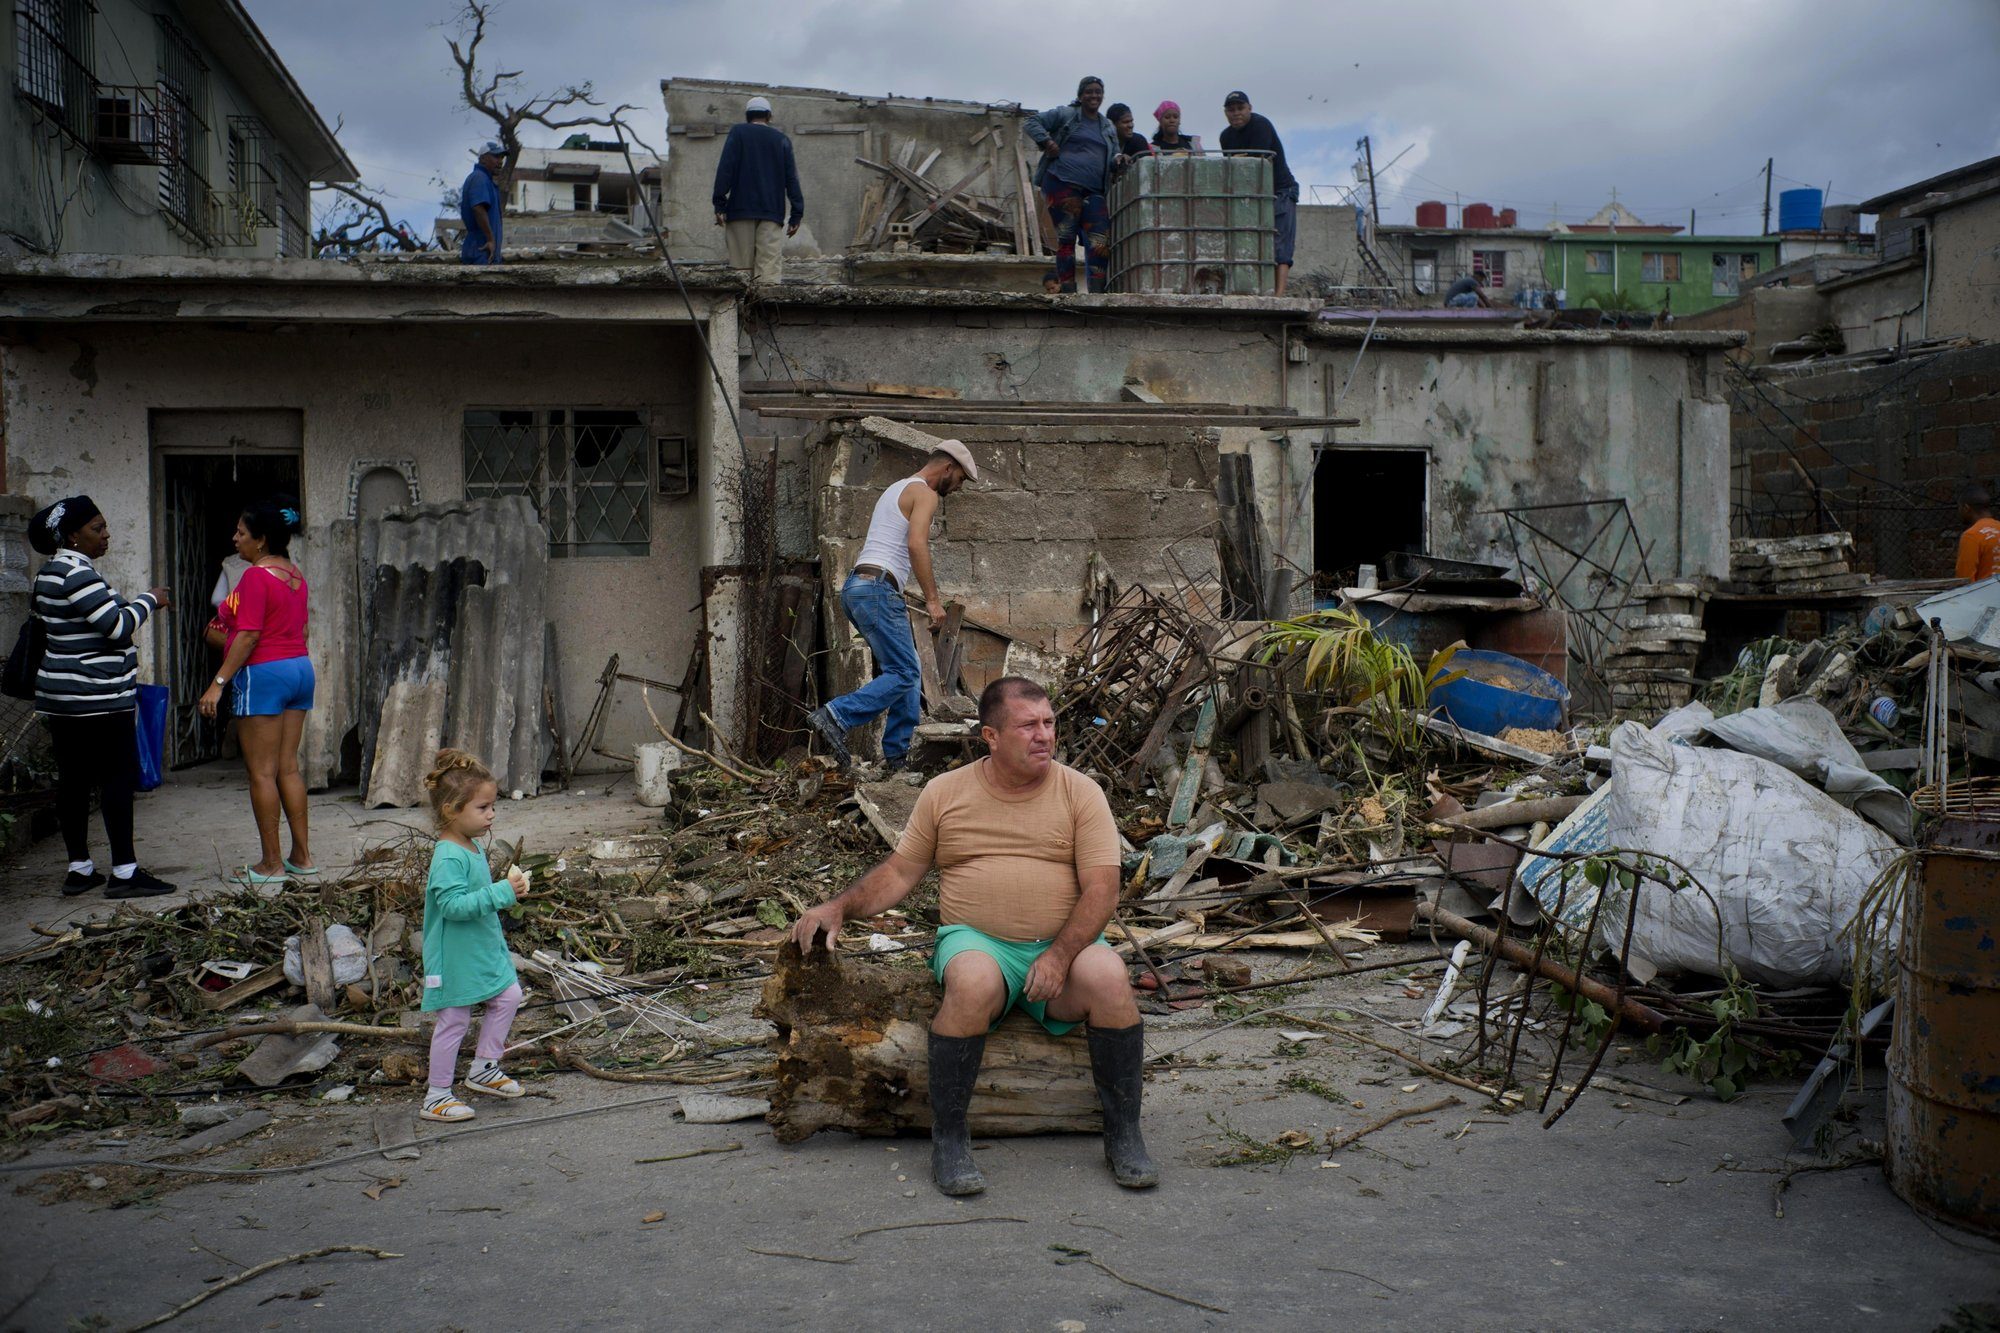 A man rests on the trunk of a tree that was toppled by a tornado, as he takes a moment to rest from removing rubble from his home in Regla, Cuba, on Monday, Jan. 28, 2019. Photo: AP